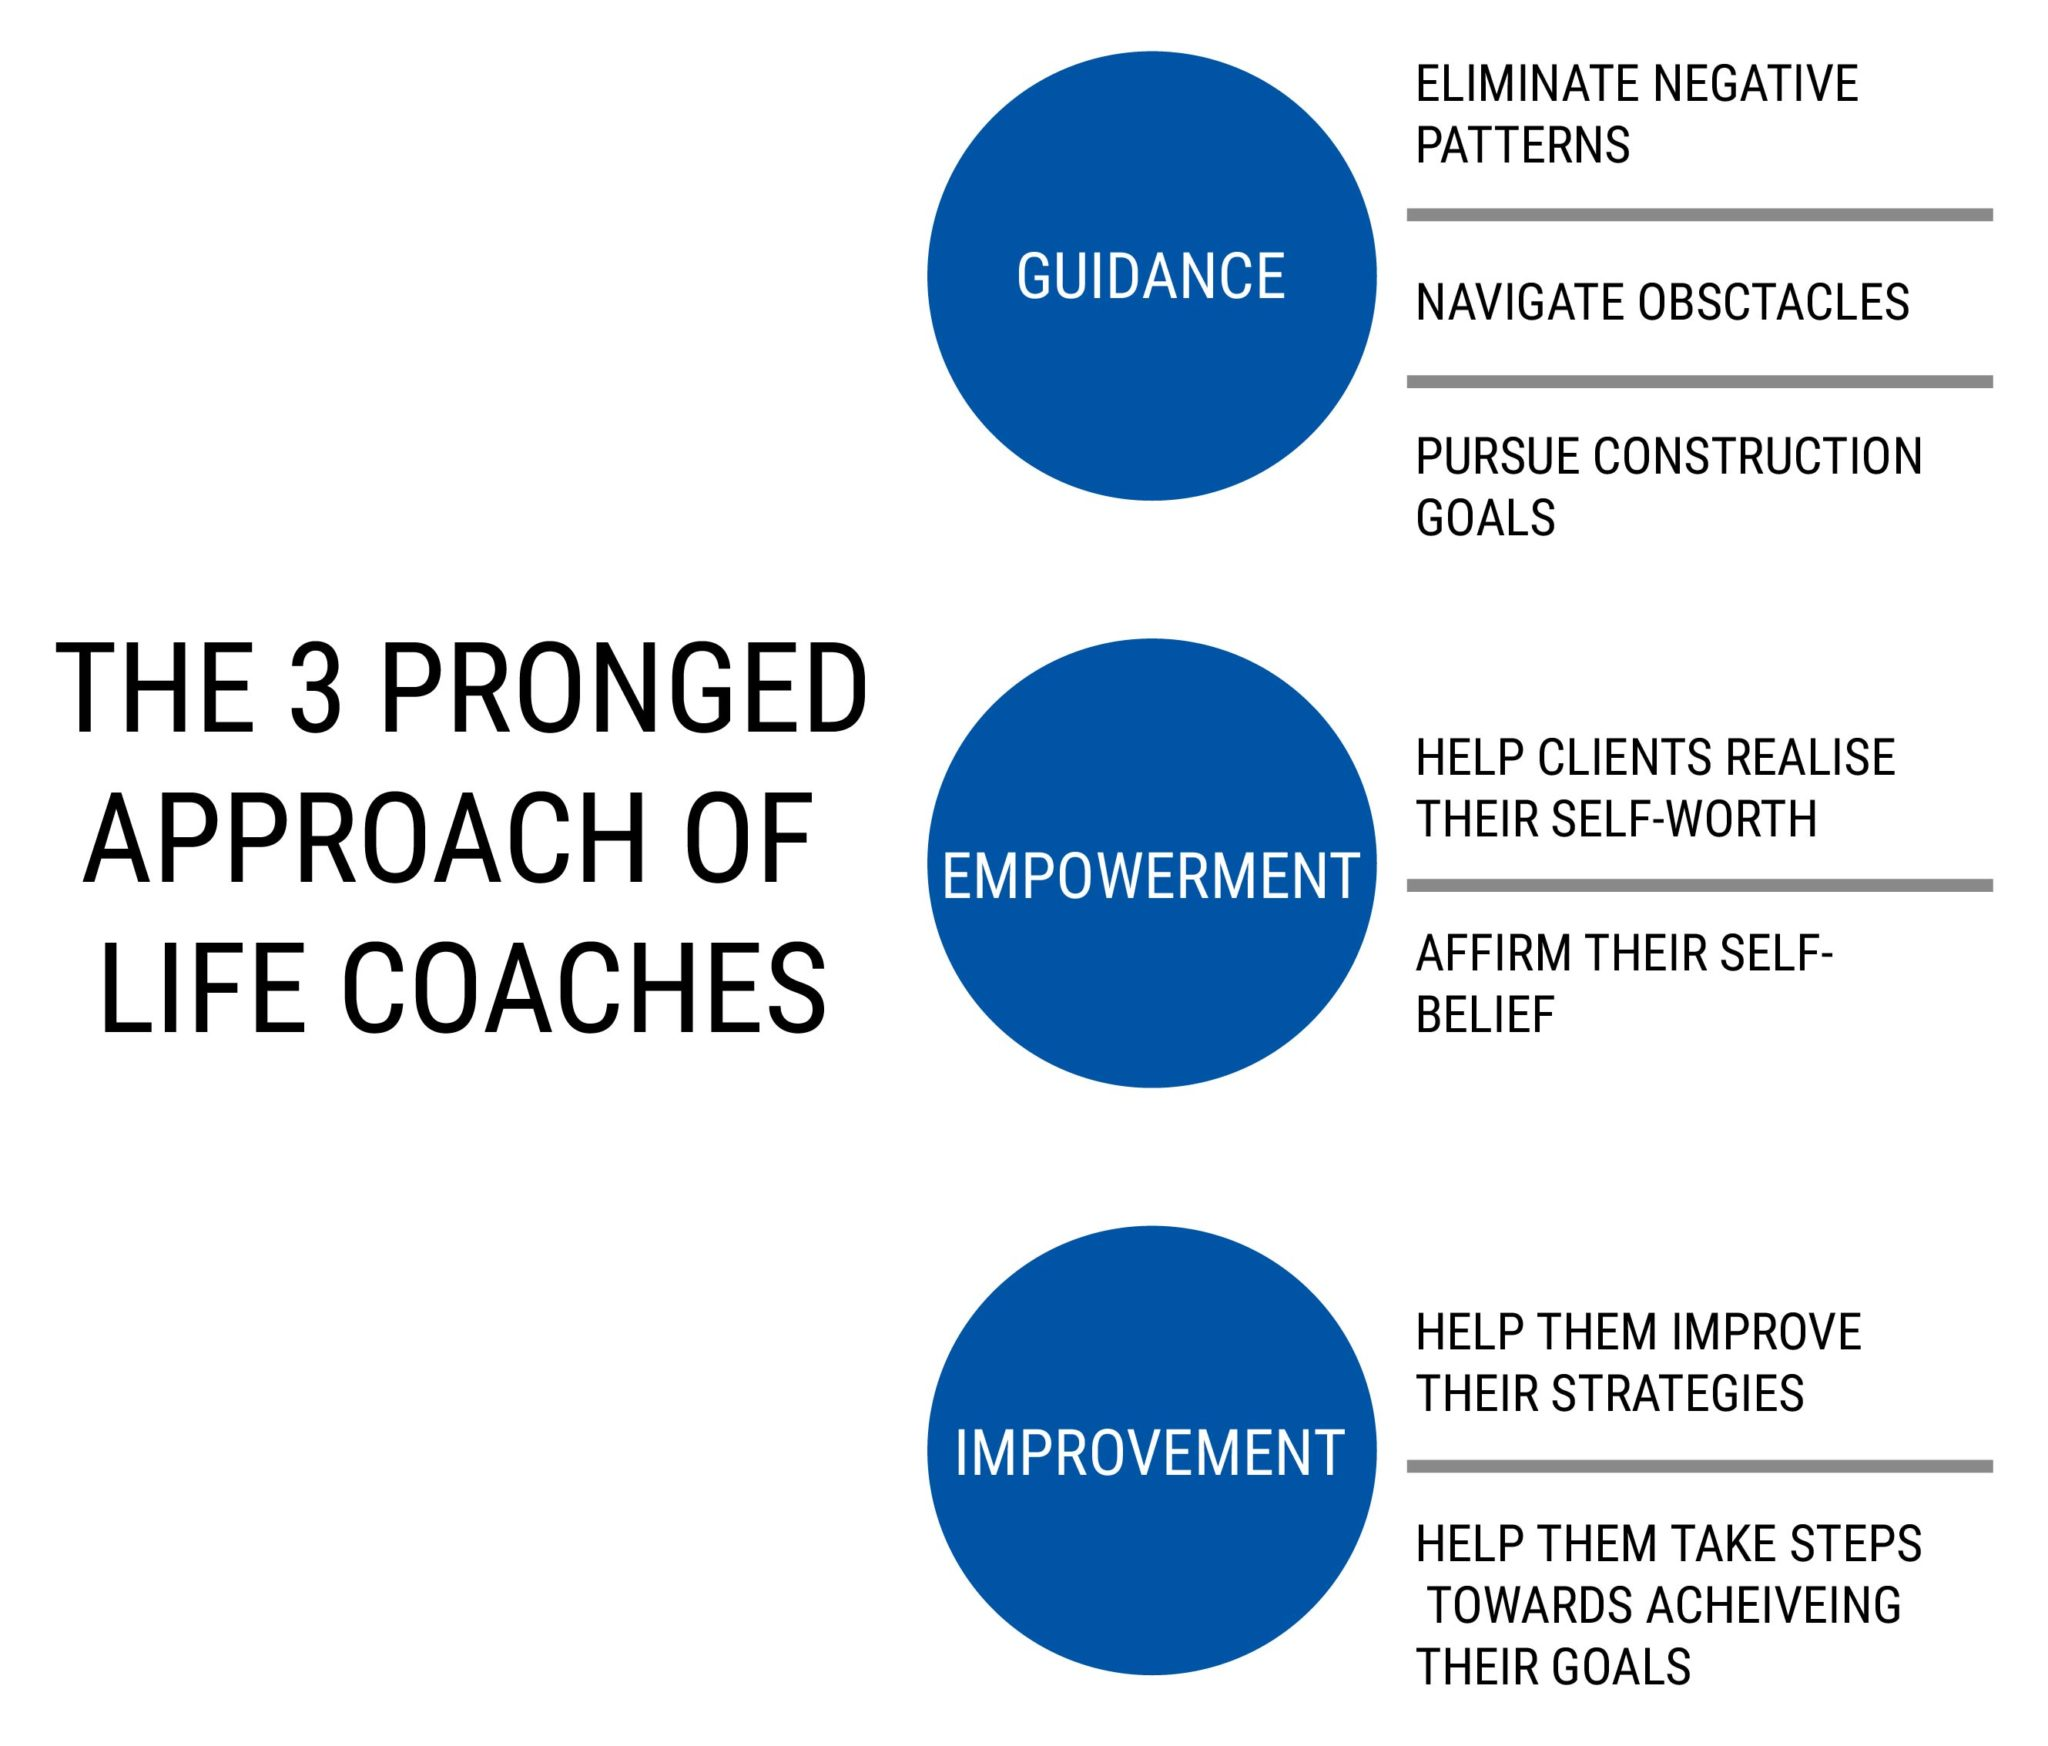 THE 3 PRONGED APPROACH OF LIFE COACHES